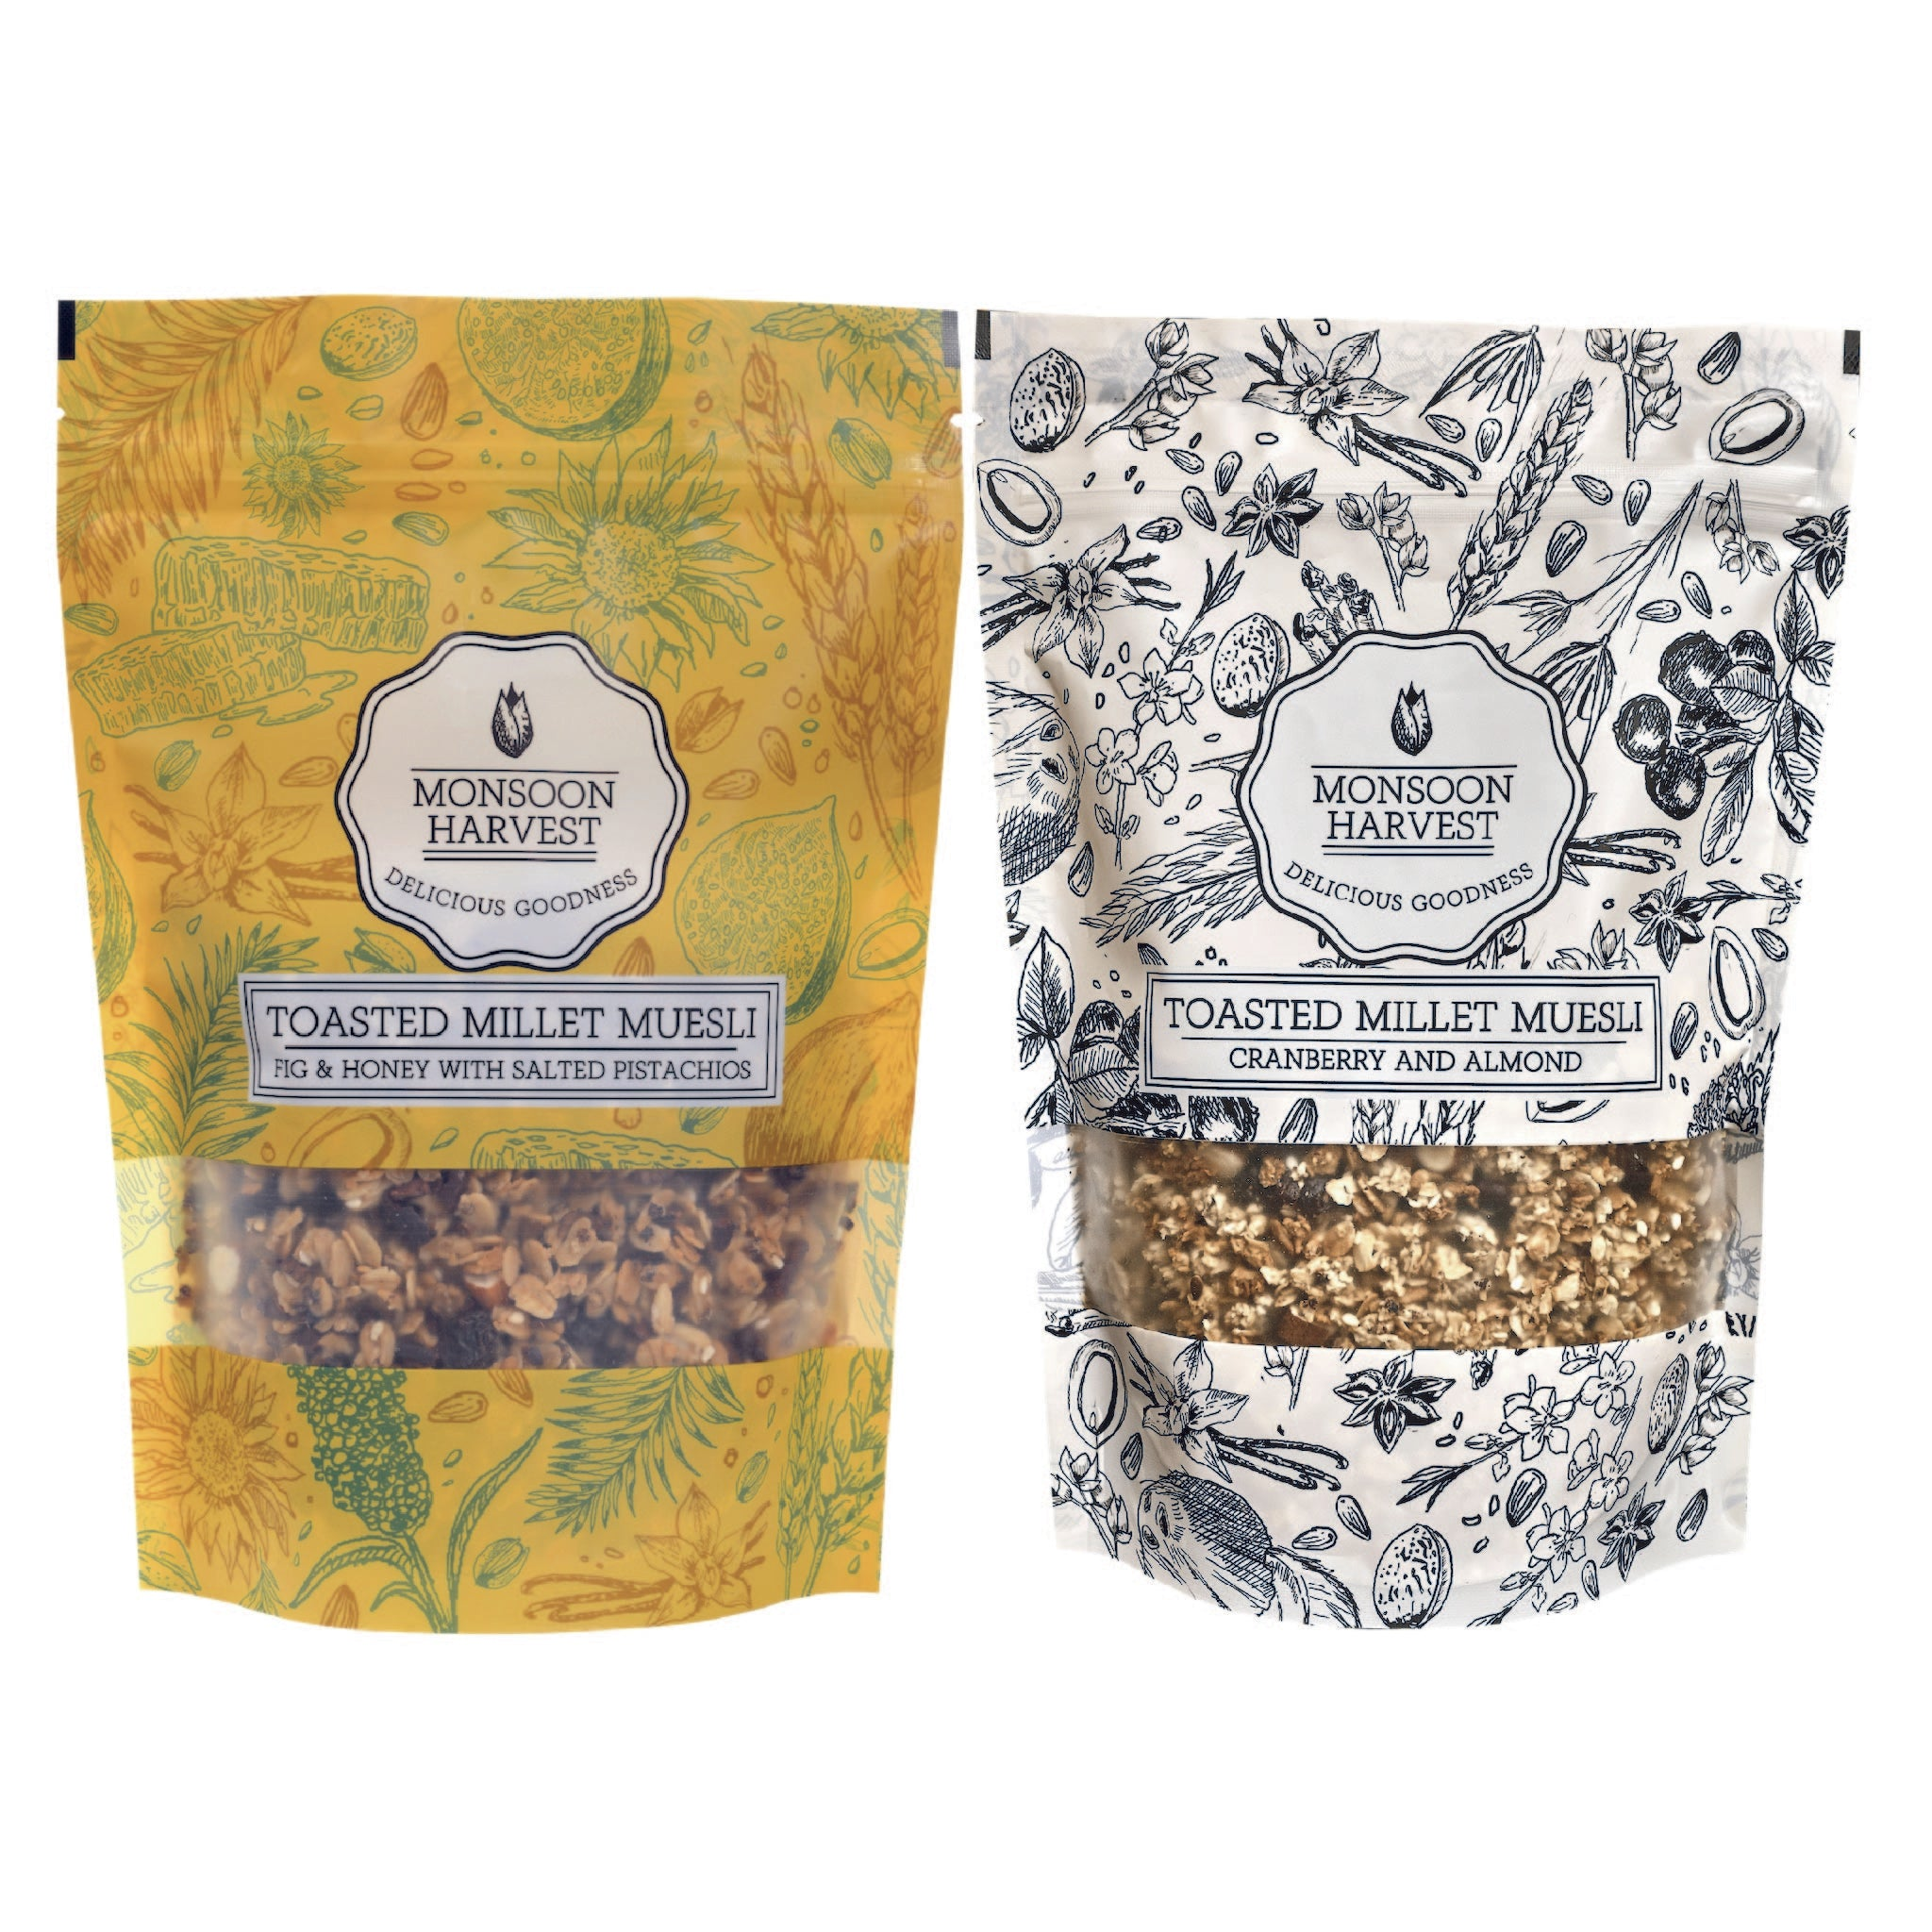 Toasted Millet Muesli - Dry Fruits Aficionados Variety Pack 2 x 250 g